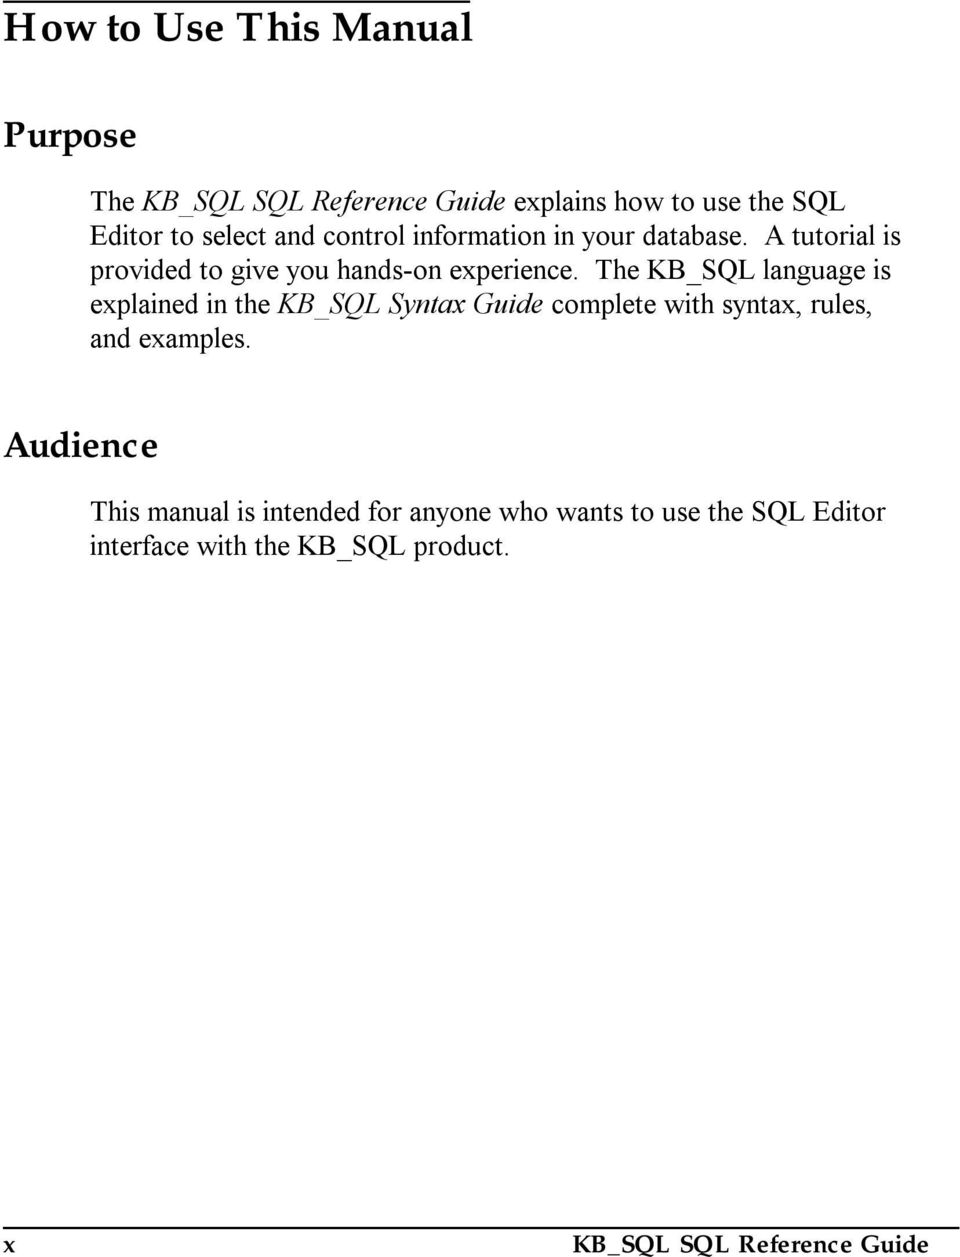 The KB_SQL language is explained in the KB_SQL Syntax Guide complete with syntax, rules, and examples.